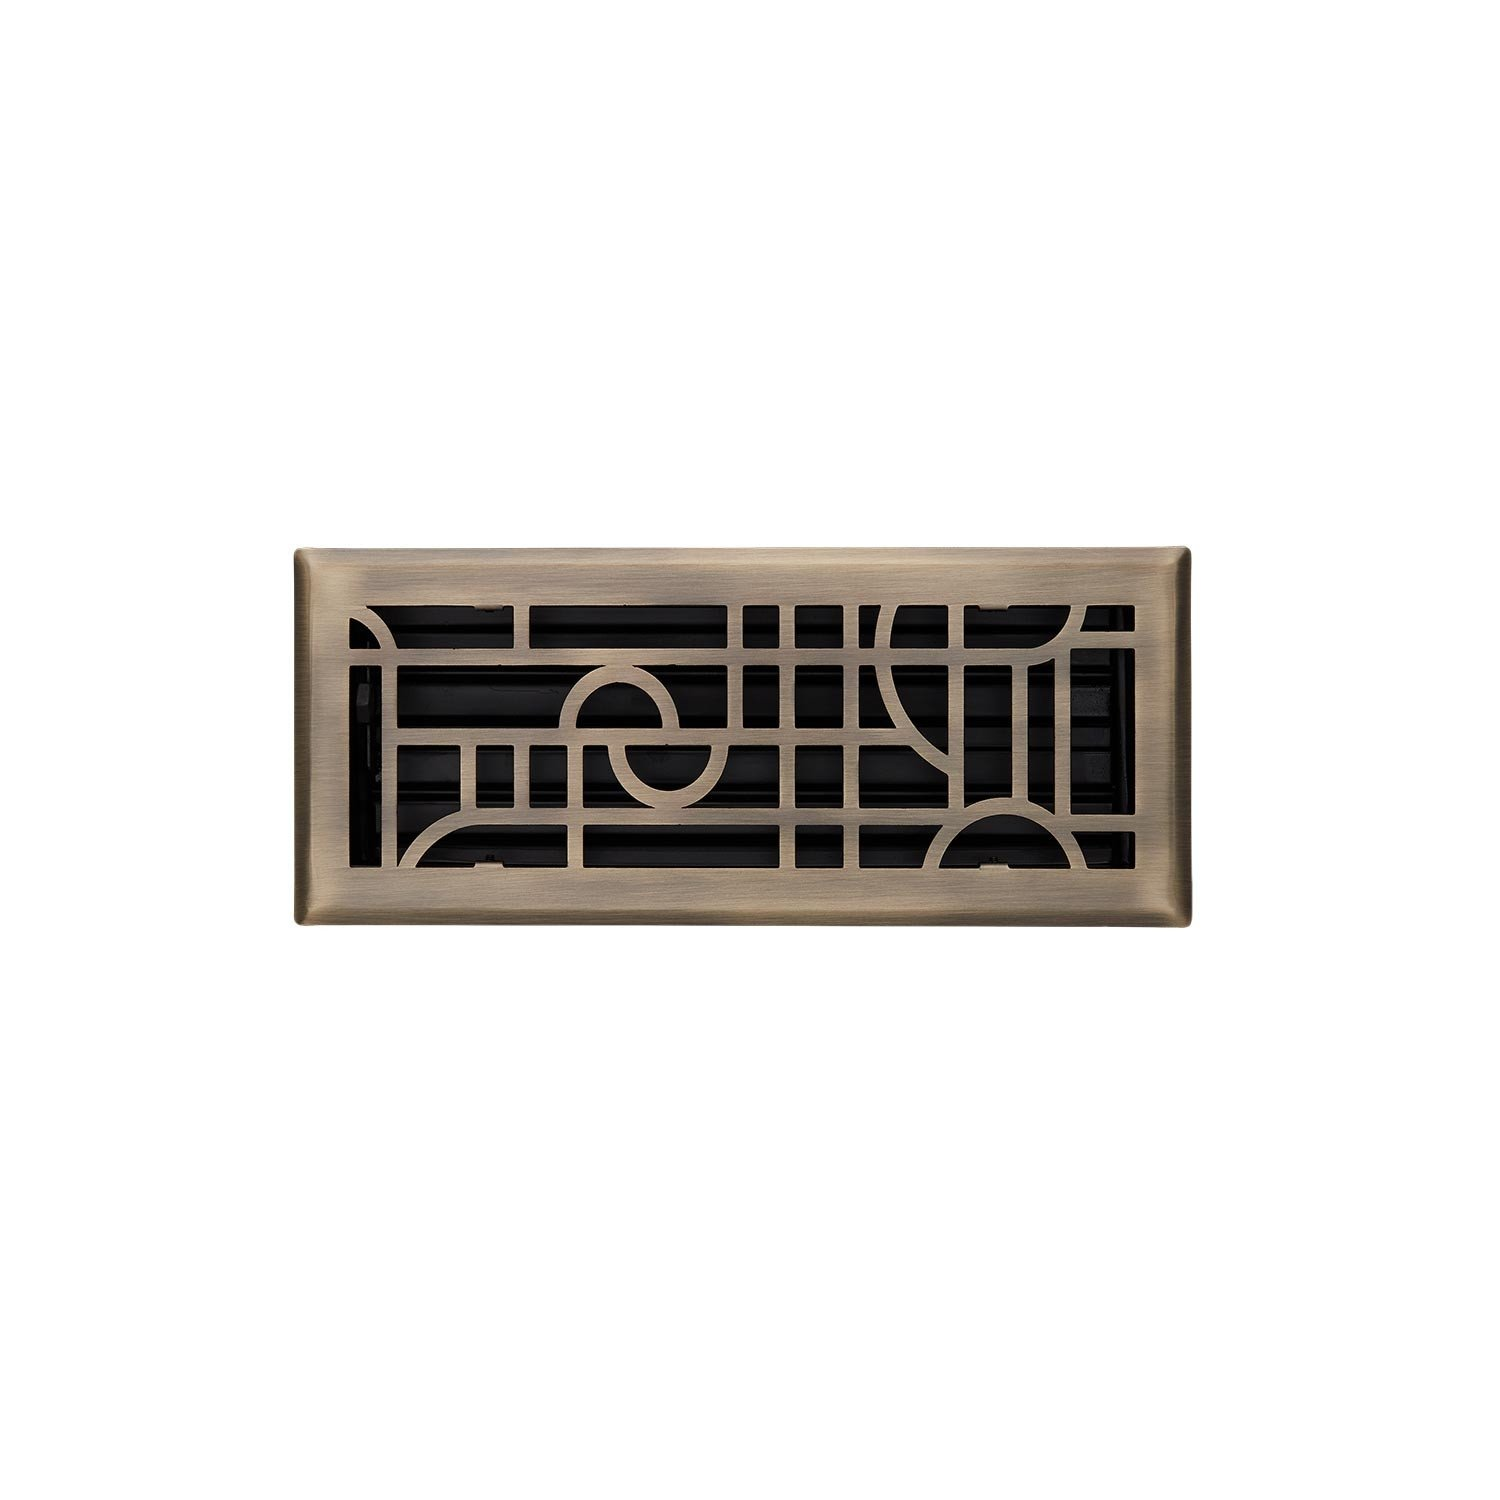 Steel Floor Register in Antique Copper Finish Naiture NIC 3-3//4 X 12 5-1//4 X 13-3//8 Overall